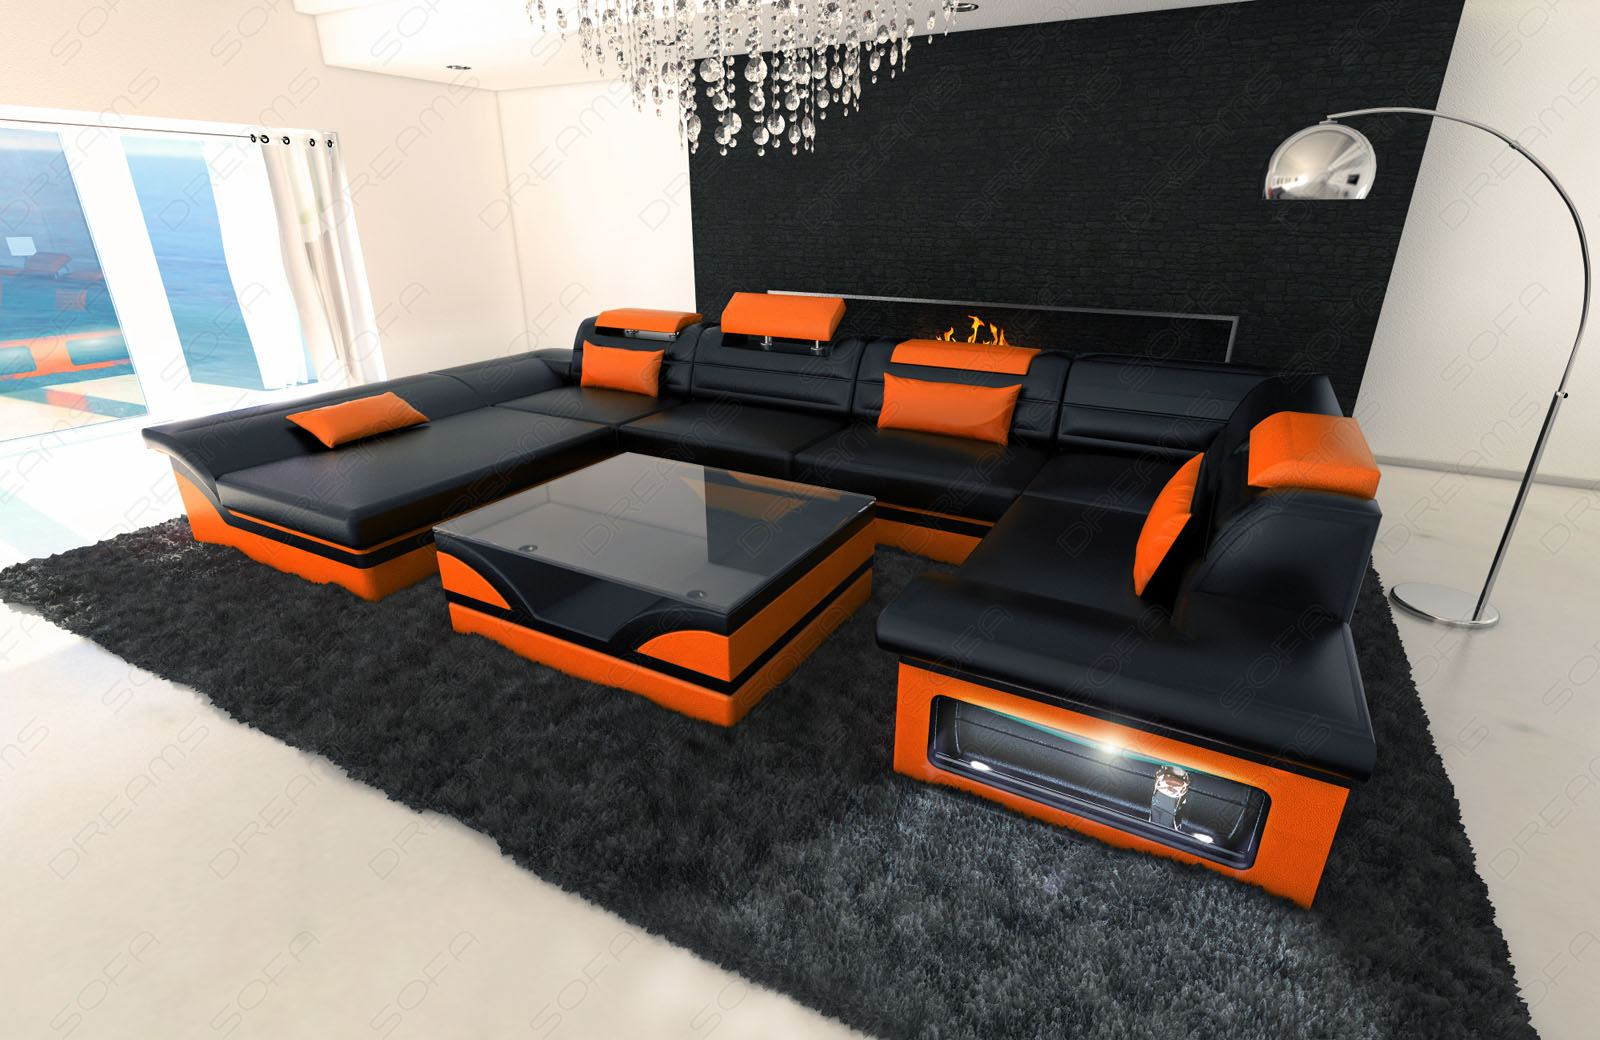 details about big leather sofa enzo with led lights black orange. Black Bedroom Furniture Sets. Home Design Ideas